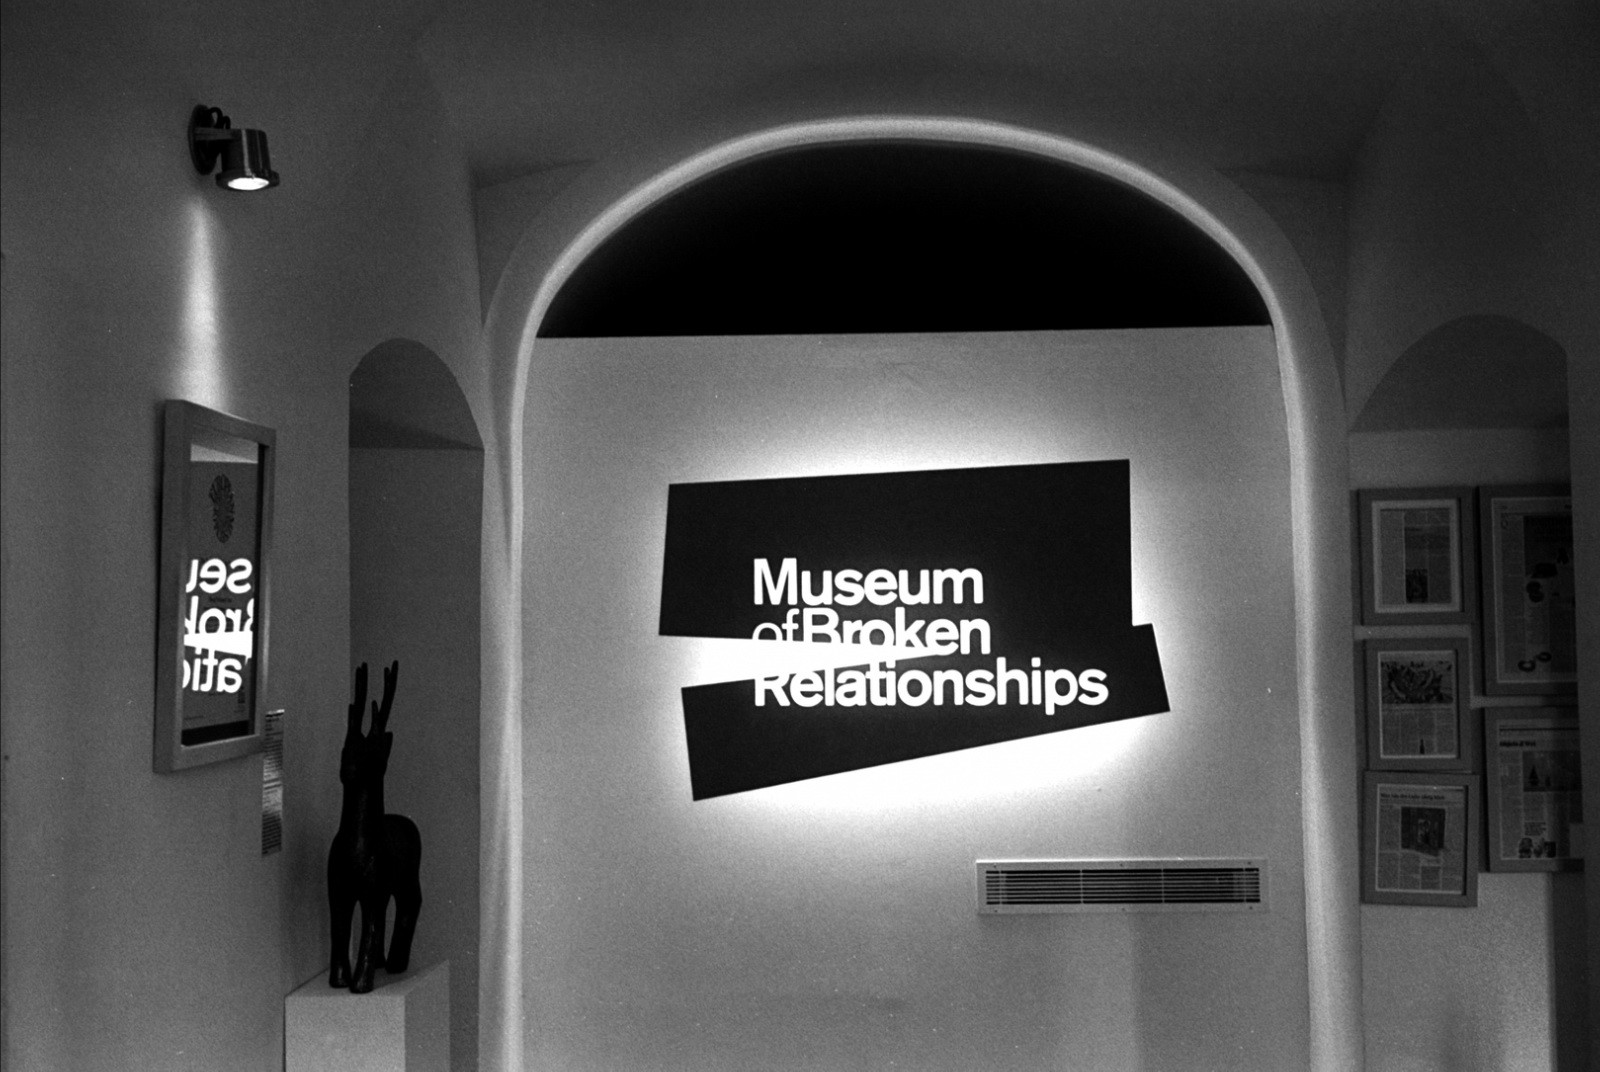 Zagreb, Museum of Broken Relationships - interior (source: Flickr)